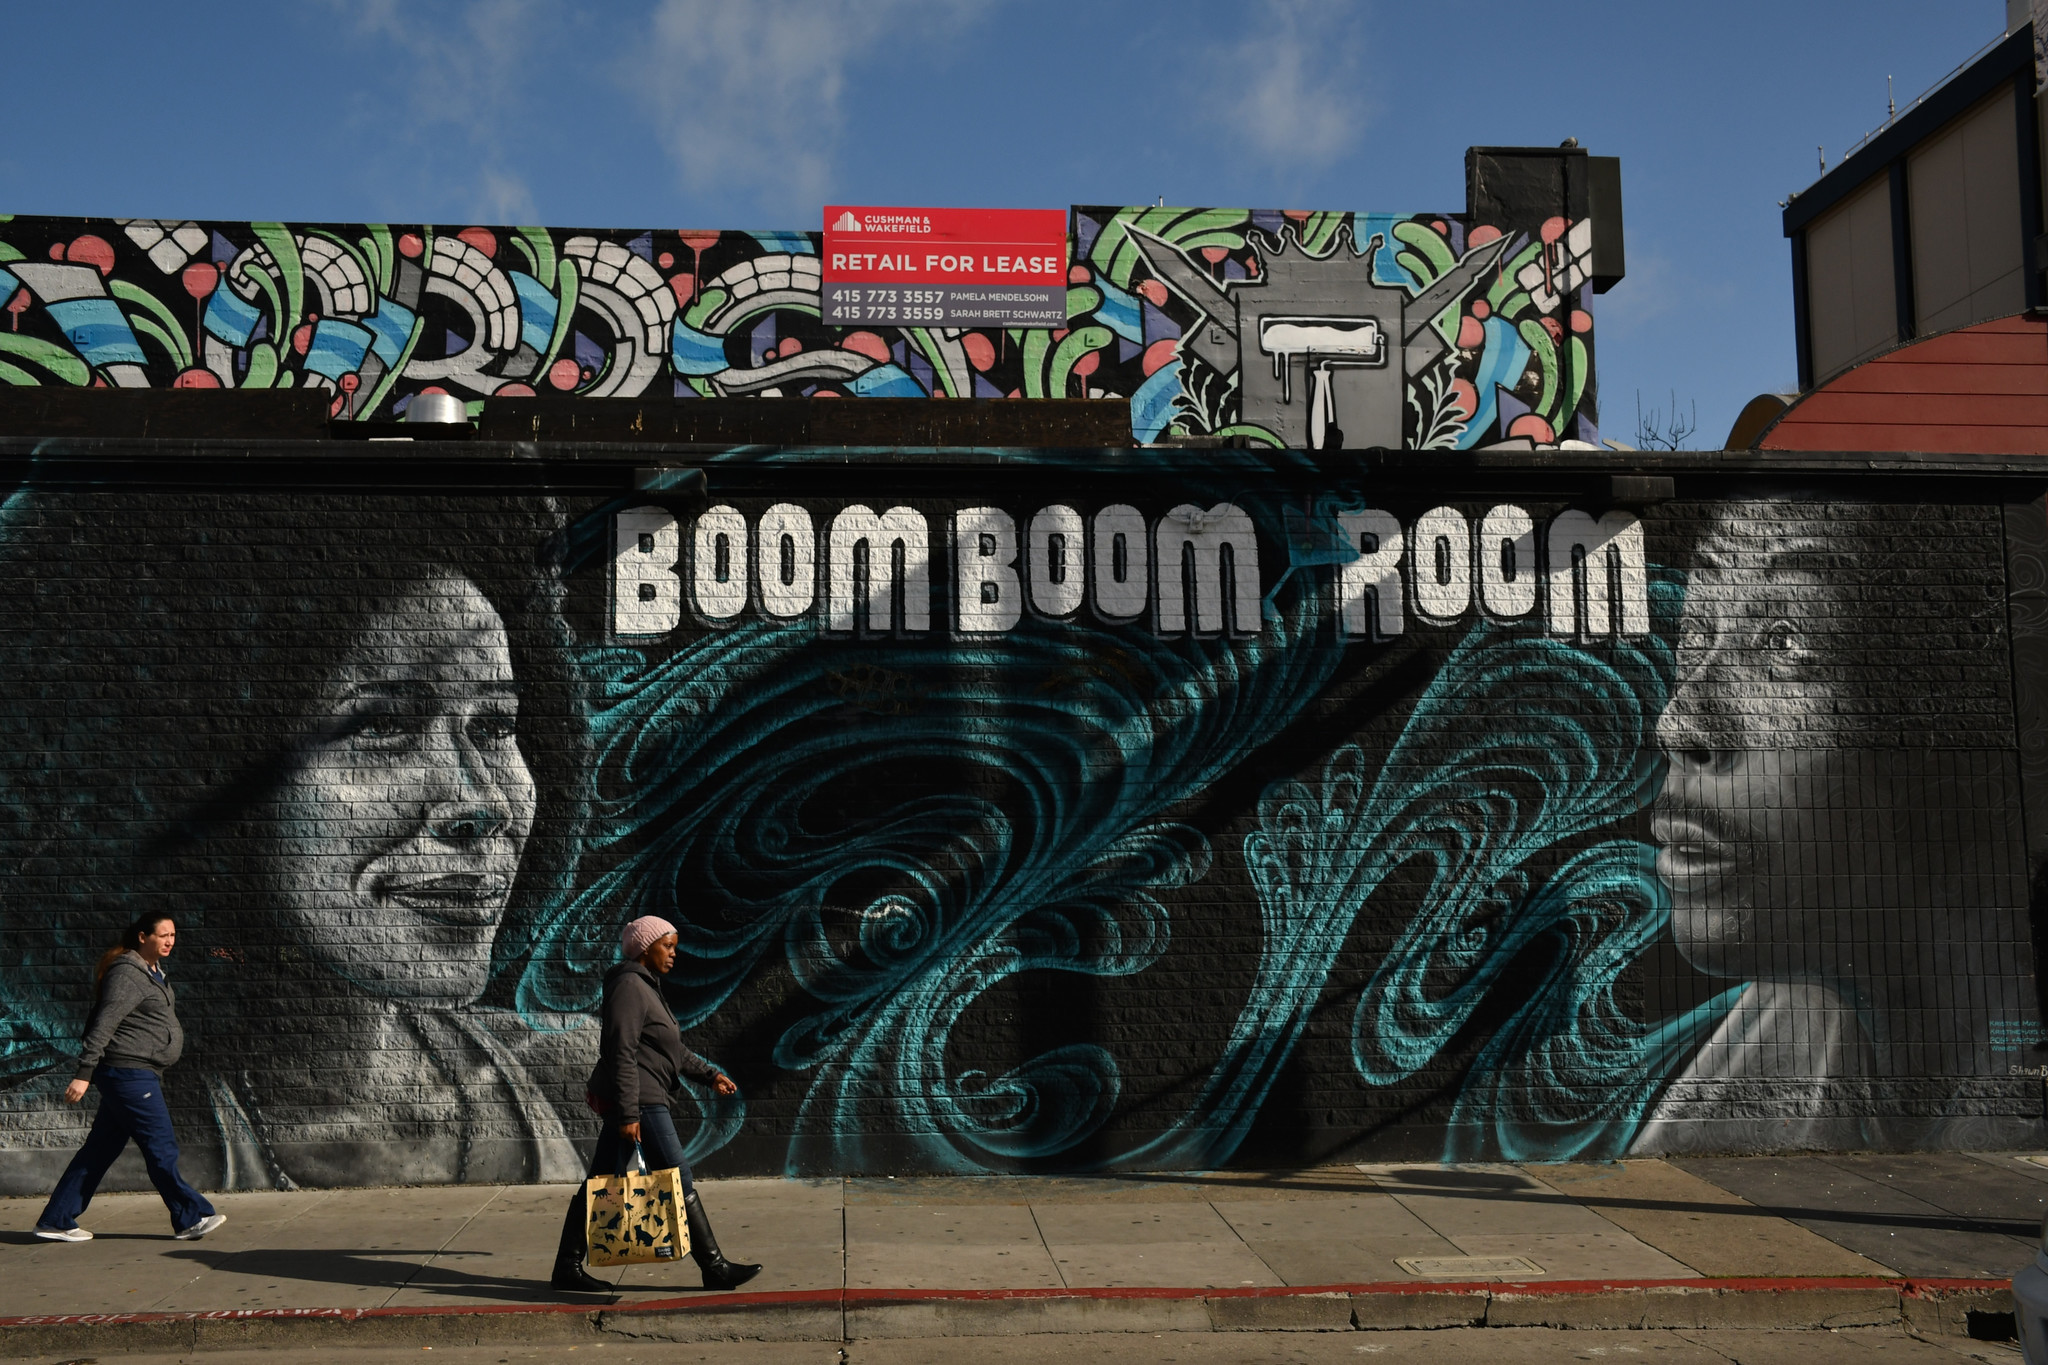 The Boom Boom Room is a lounge and music venue at Fillmore Street and Geary Boulevard in San Francisc